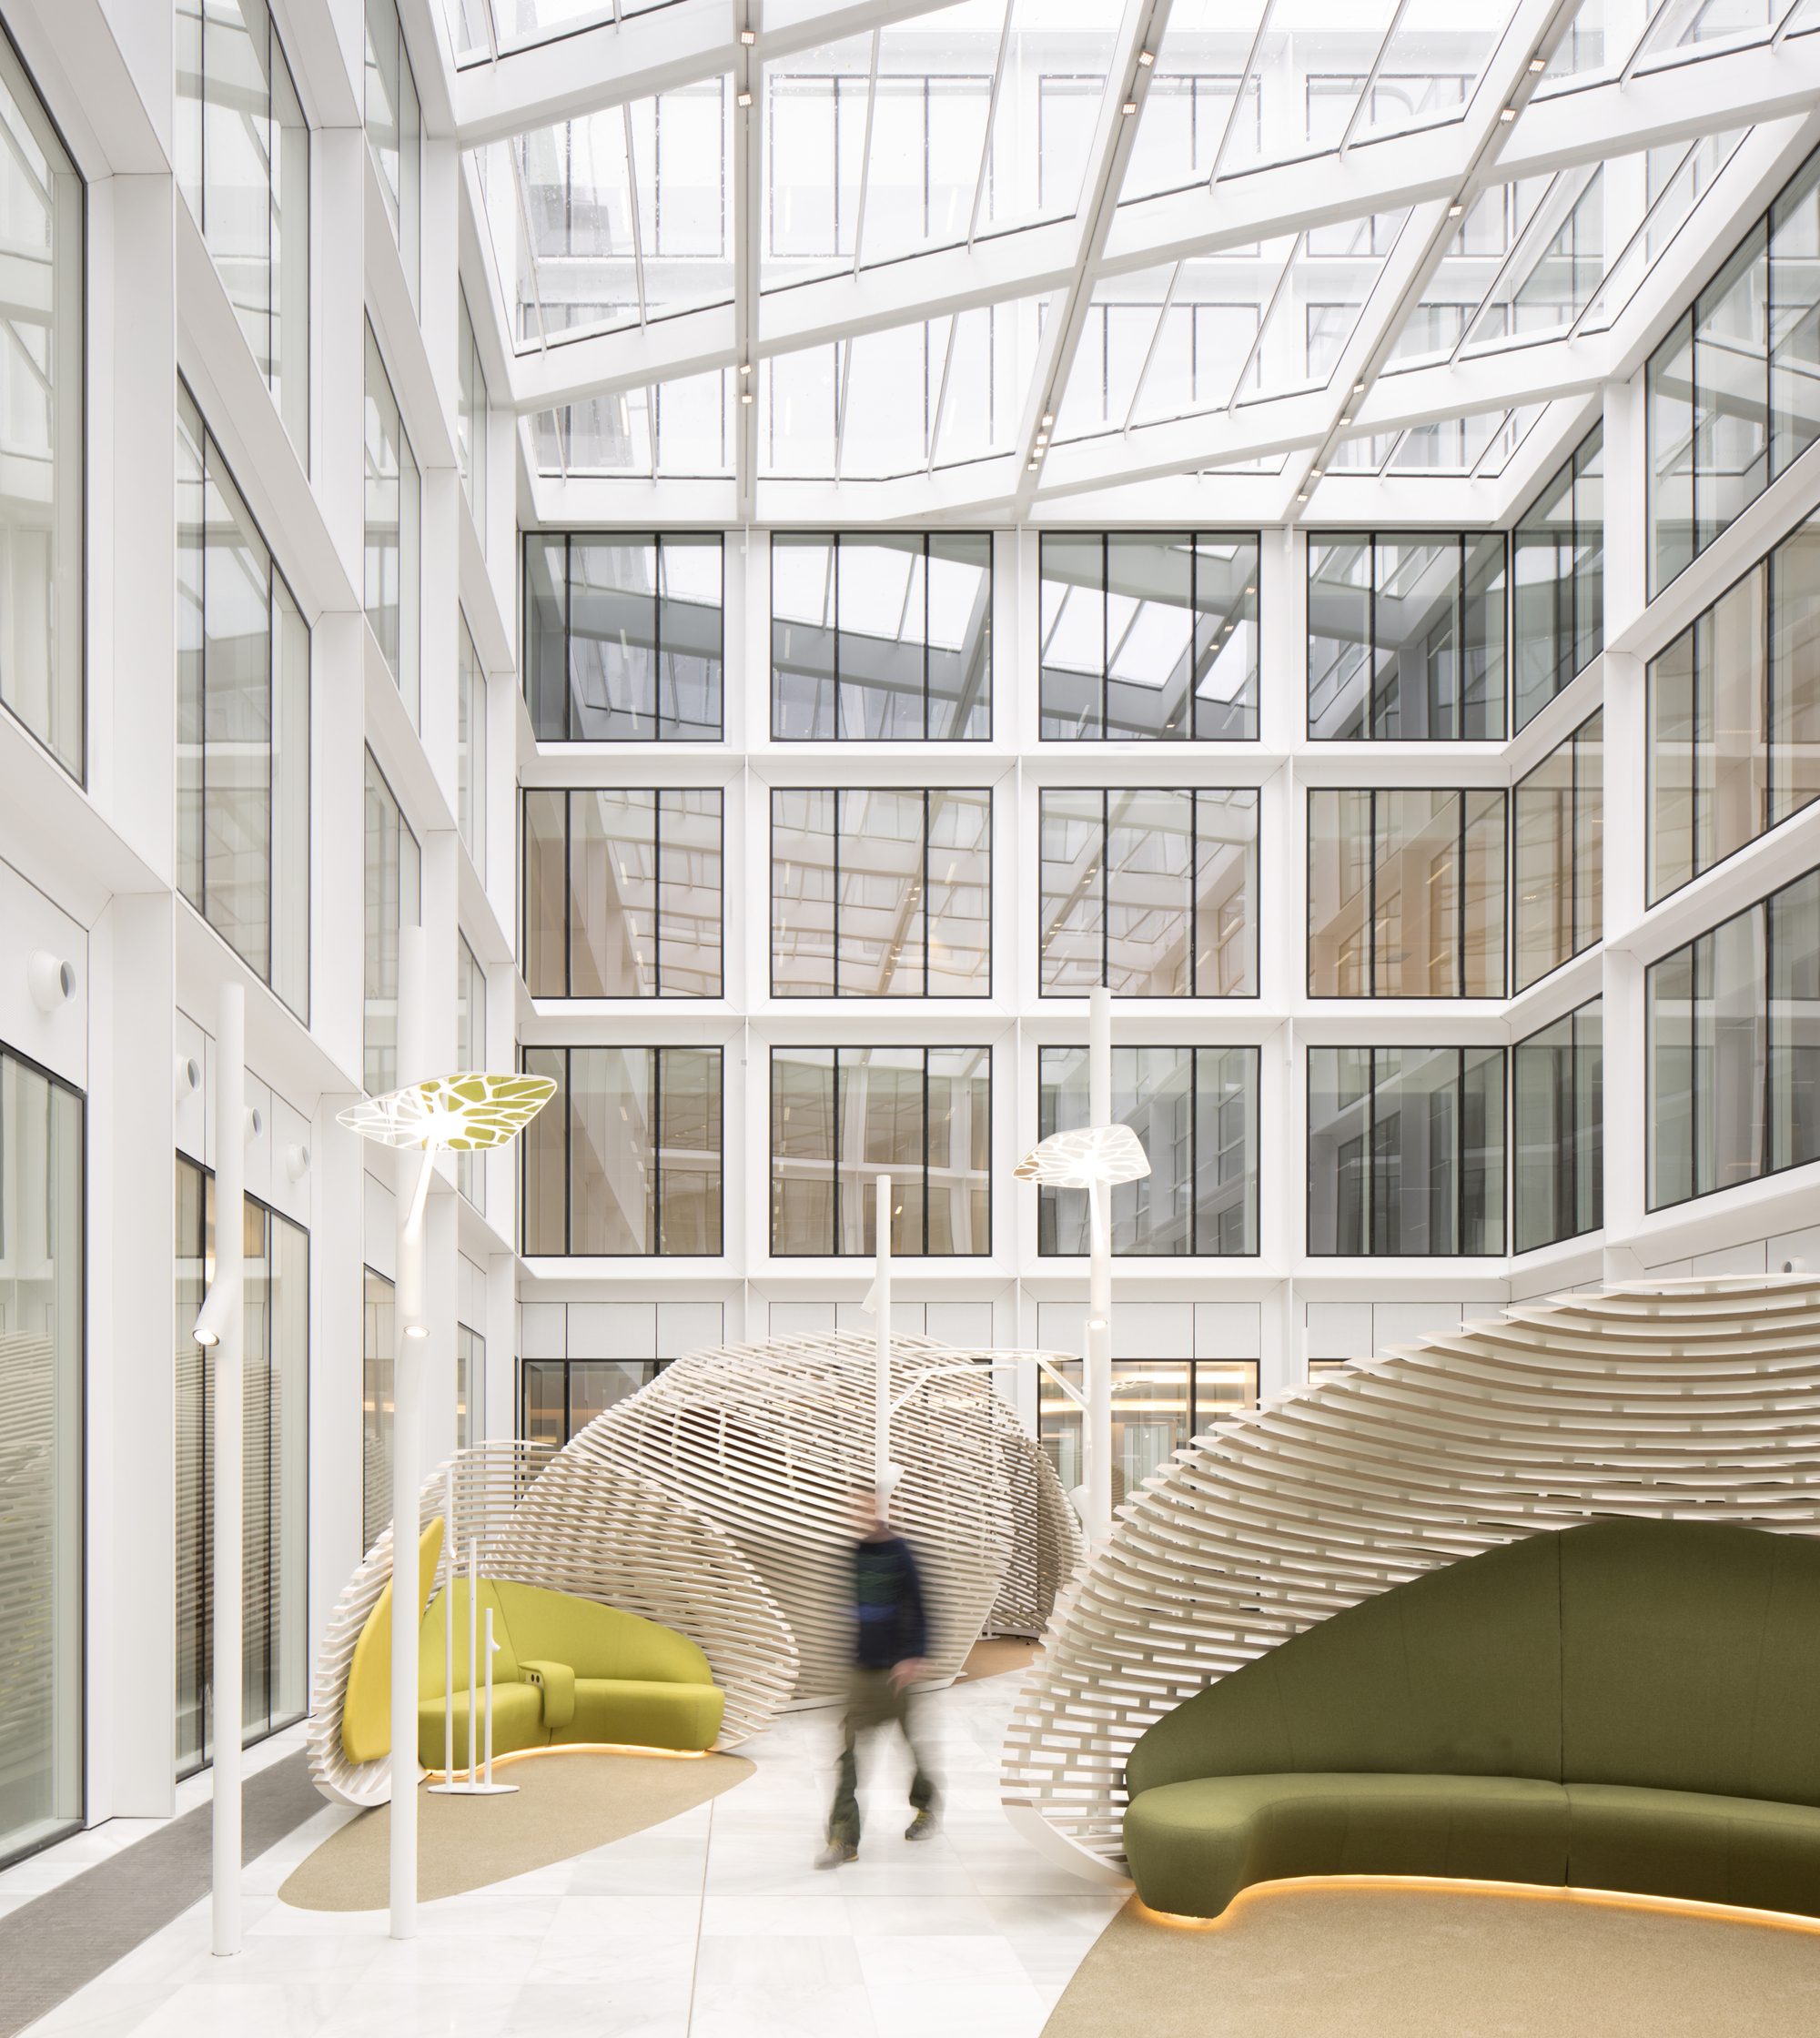 Cloud paris philippe chiambaretta architecte archdaily for Architecte paris